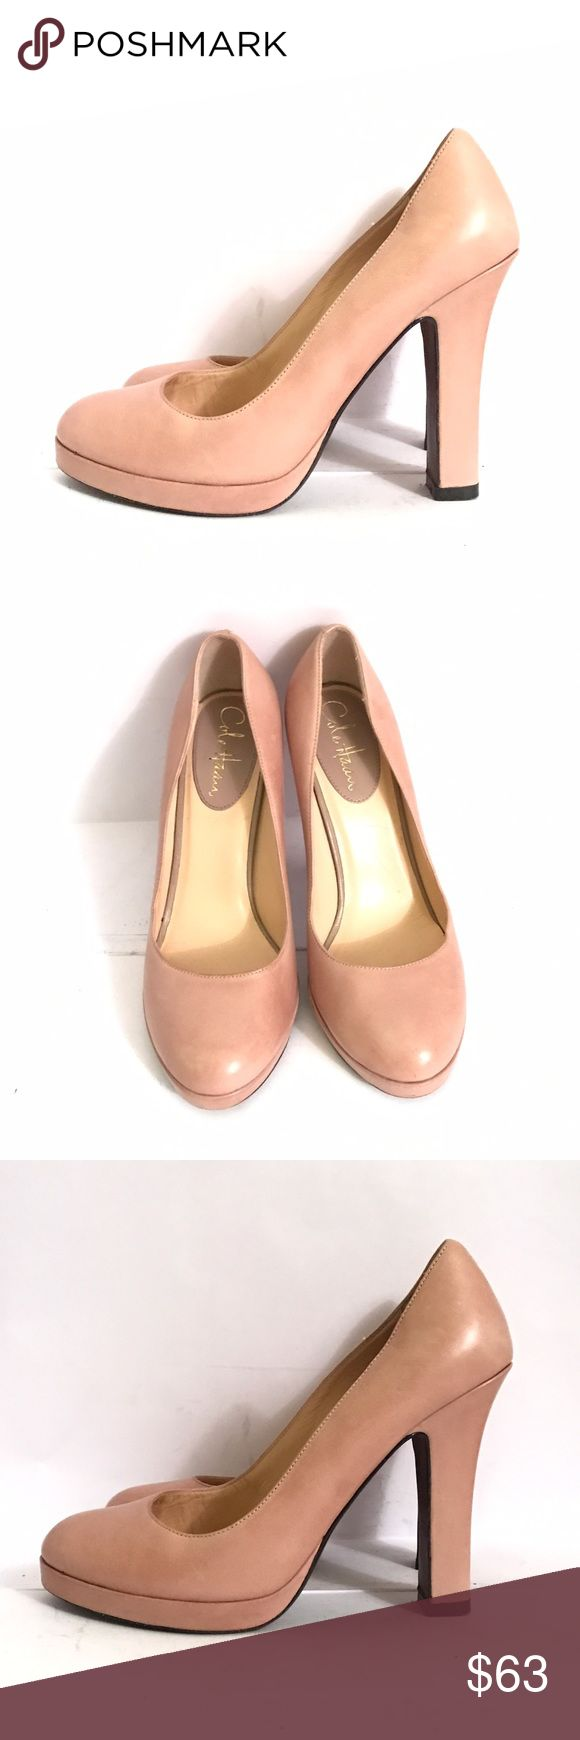 Cole Haan Nude / Blush Leather Pumps In brand new condition. So pretty and comfy pumps from Cole Haan . No stains no damages shows wear just on soles. Size 7.5 B , slight platform. Cole Haan Shoes Heels